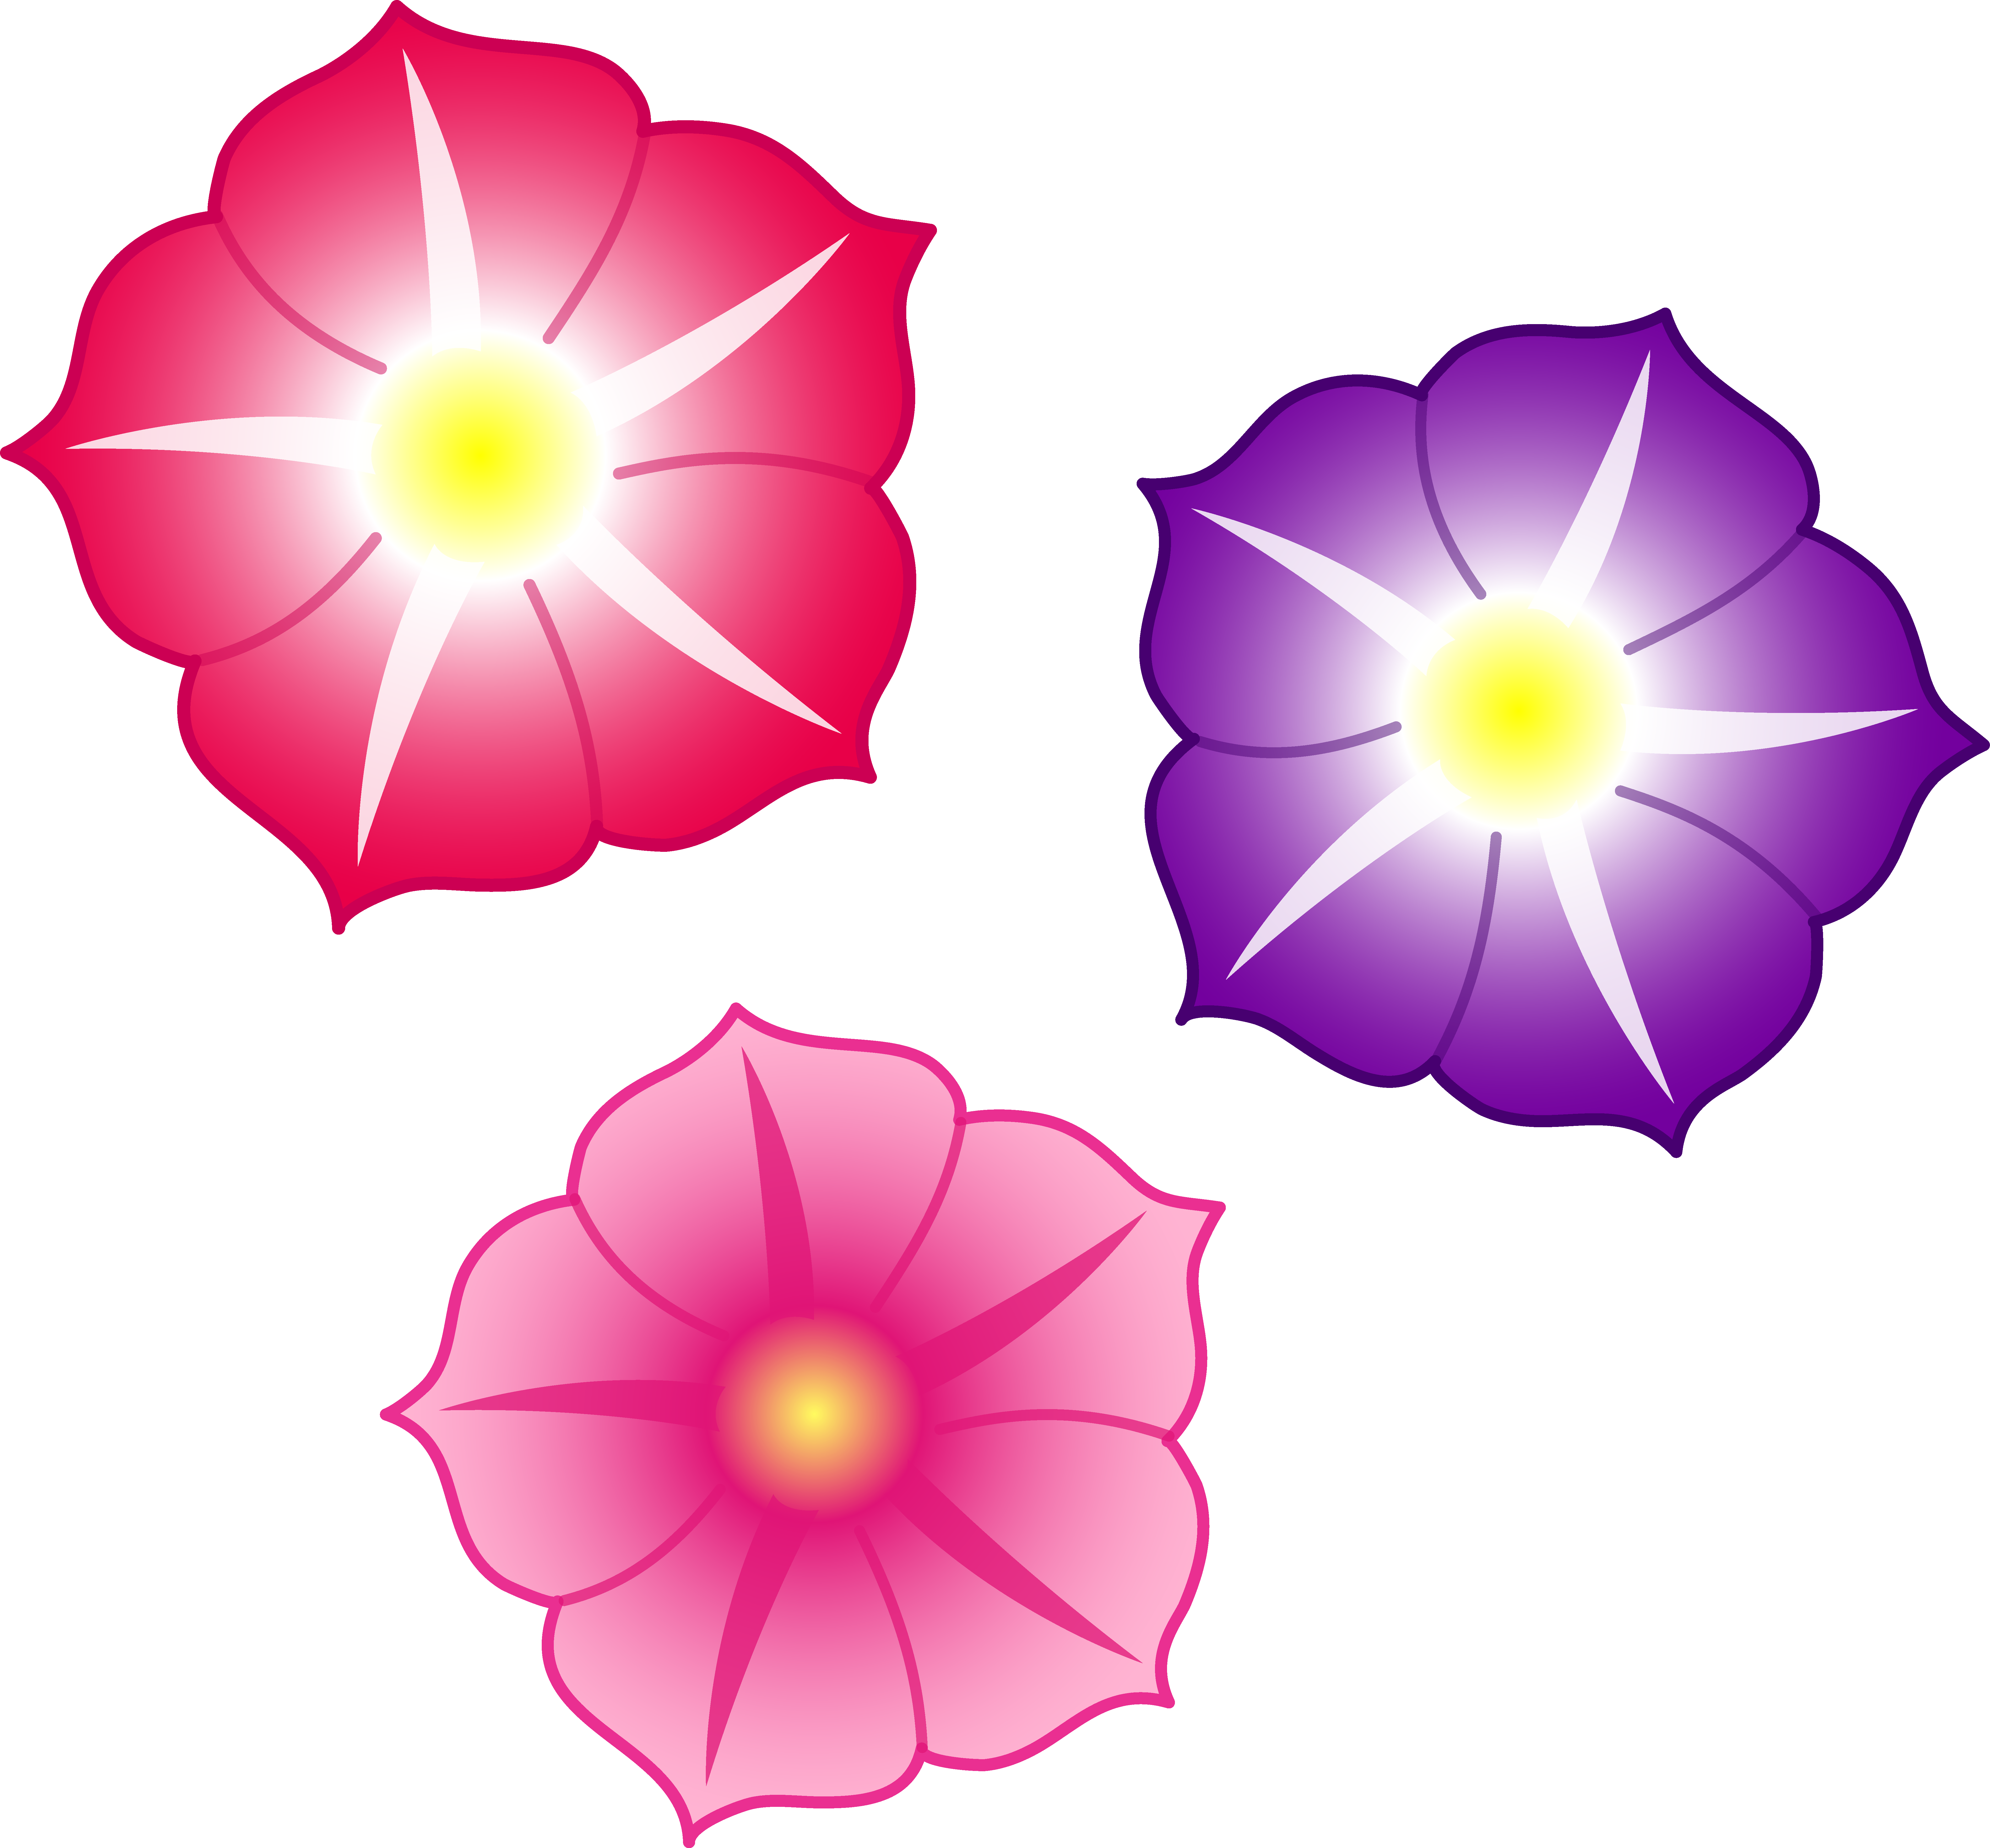 Athens clipart clip art. Cartoon flower png